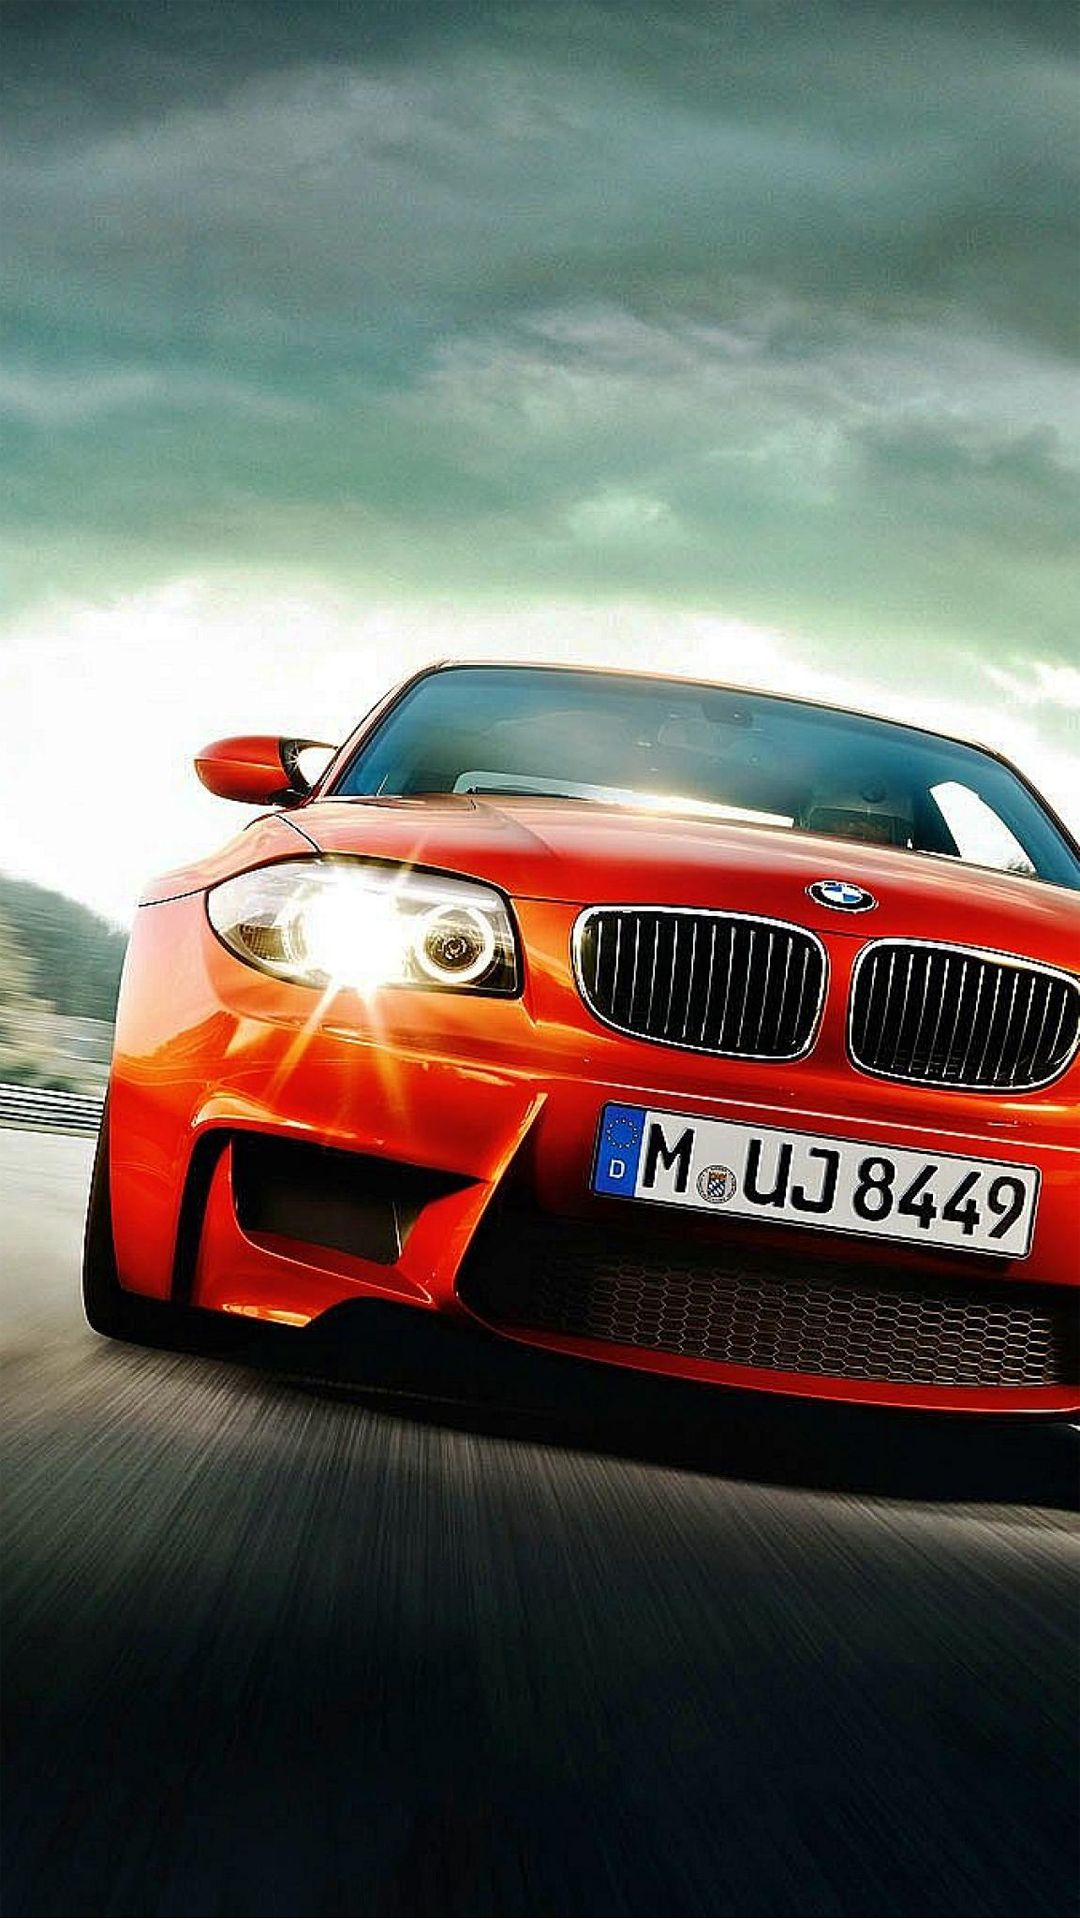 red bmw m3 speed iphone 6 plus hd wallpaper httpfreebestpicture